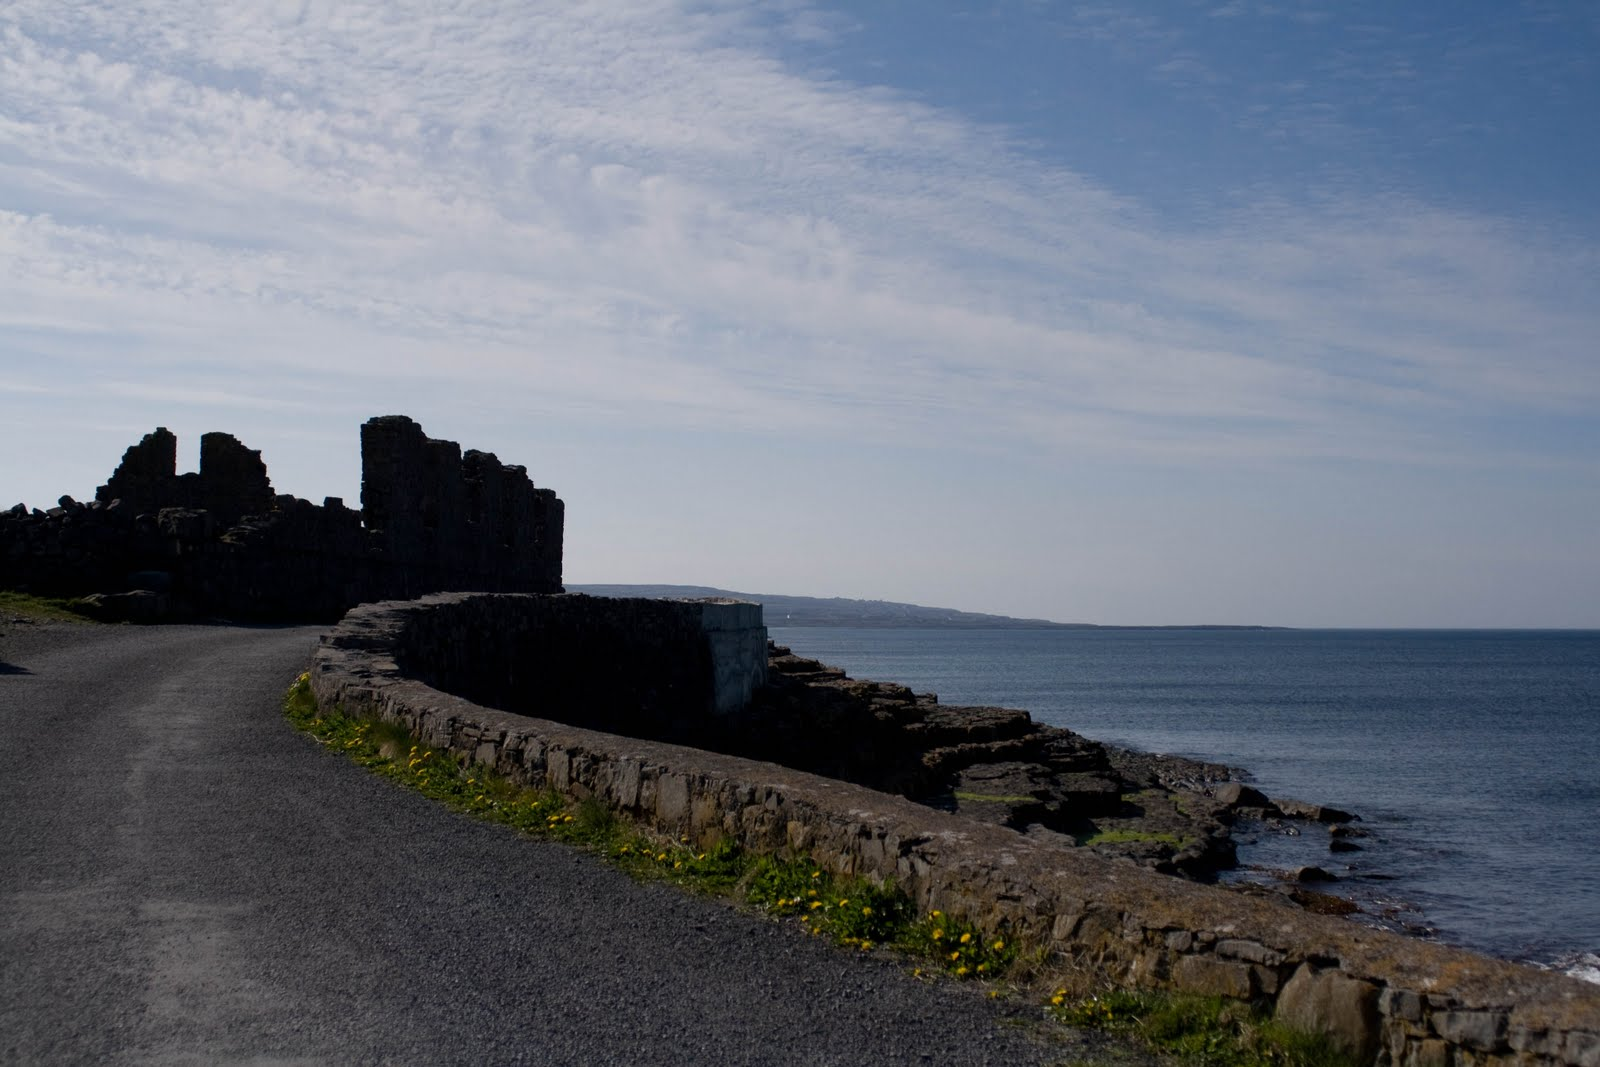 Ballyvaughan Ireland  City new picture : Ballyvaughan, Co. Clare, Ireland: Aran Islands